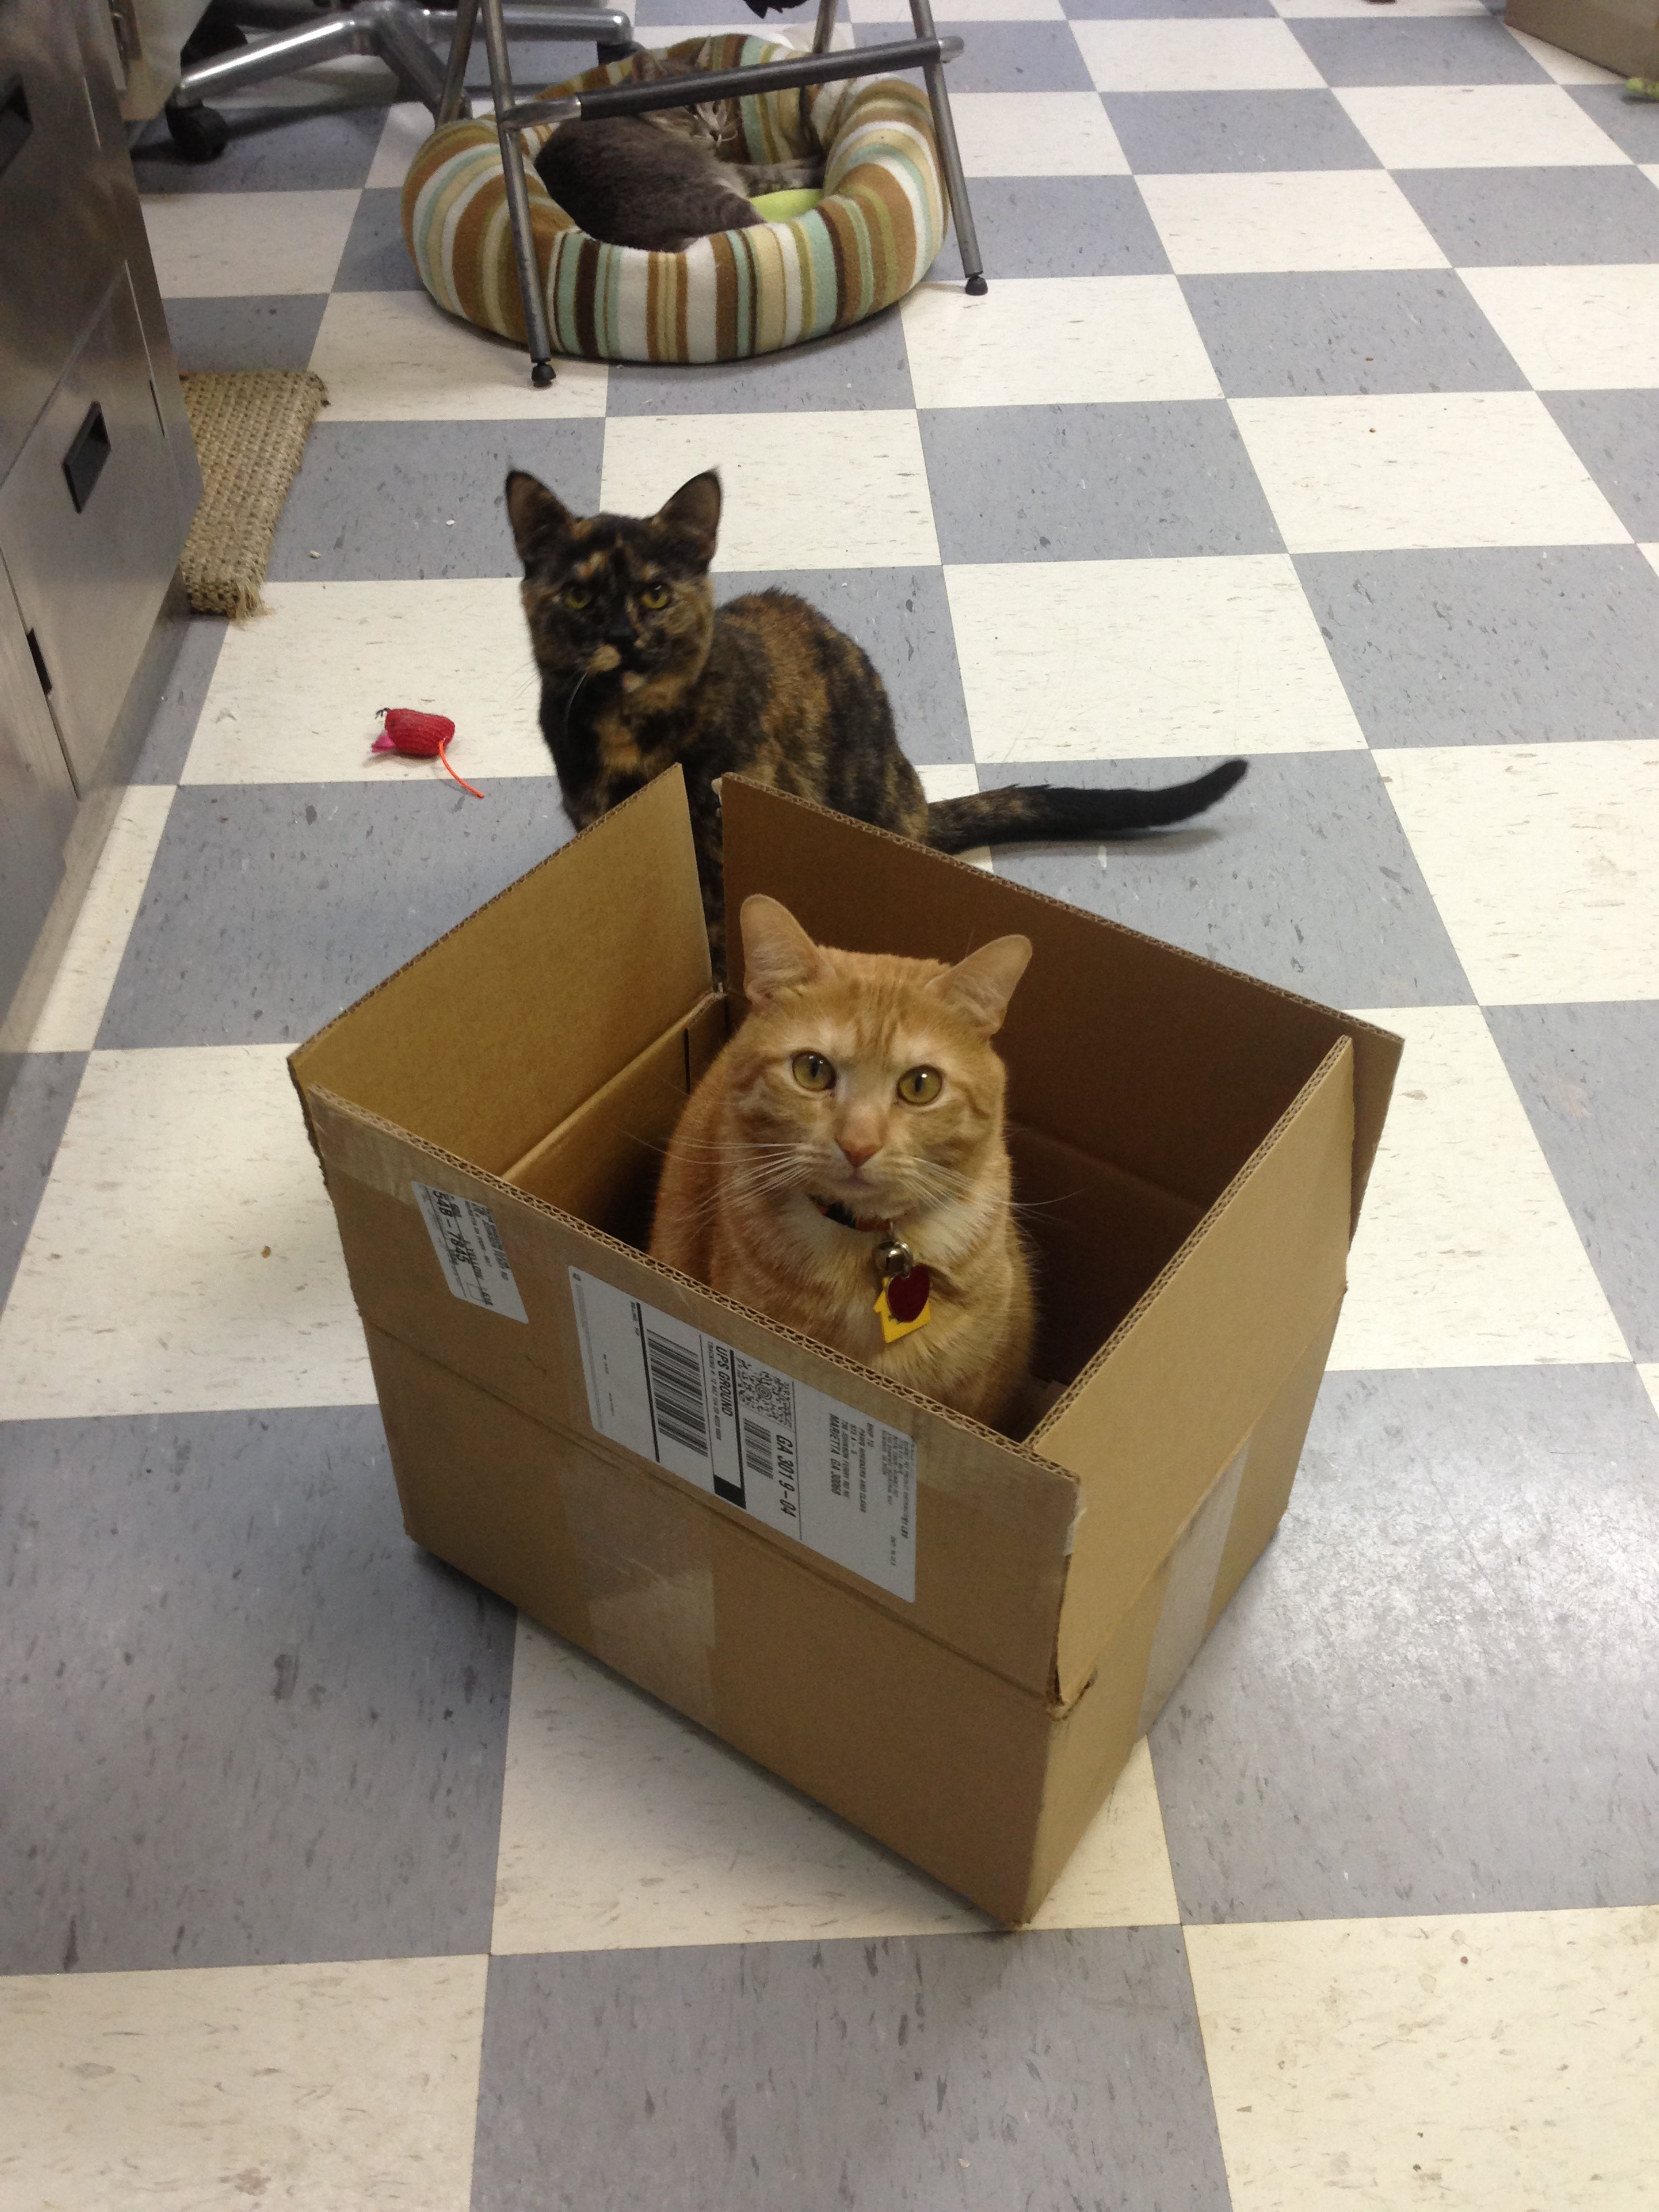 Adult cats introduced & living happily together.